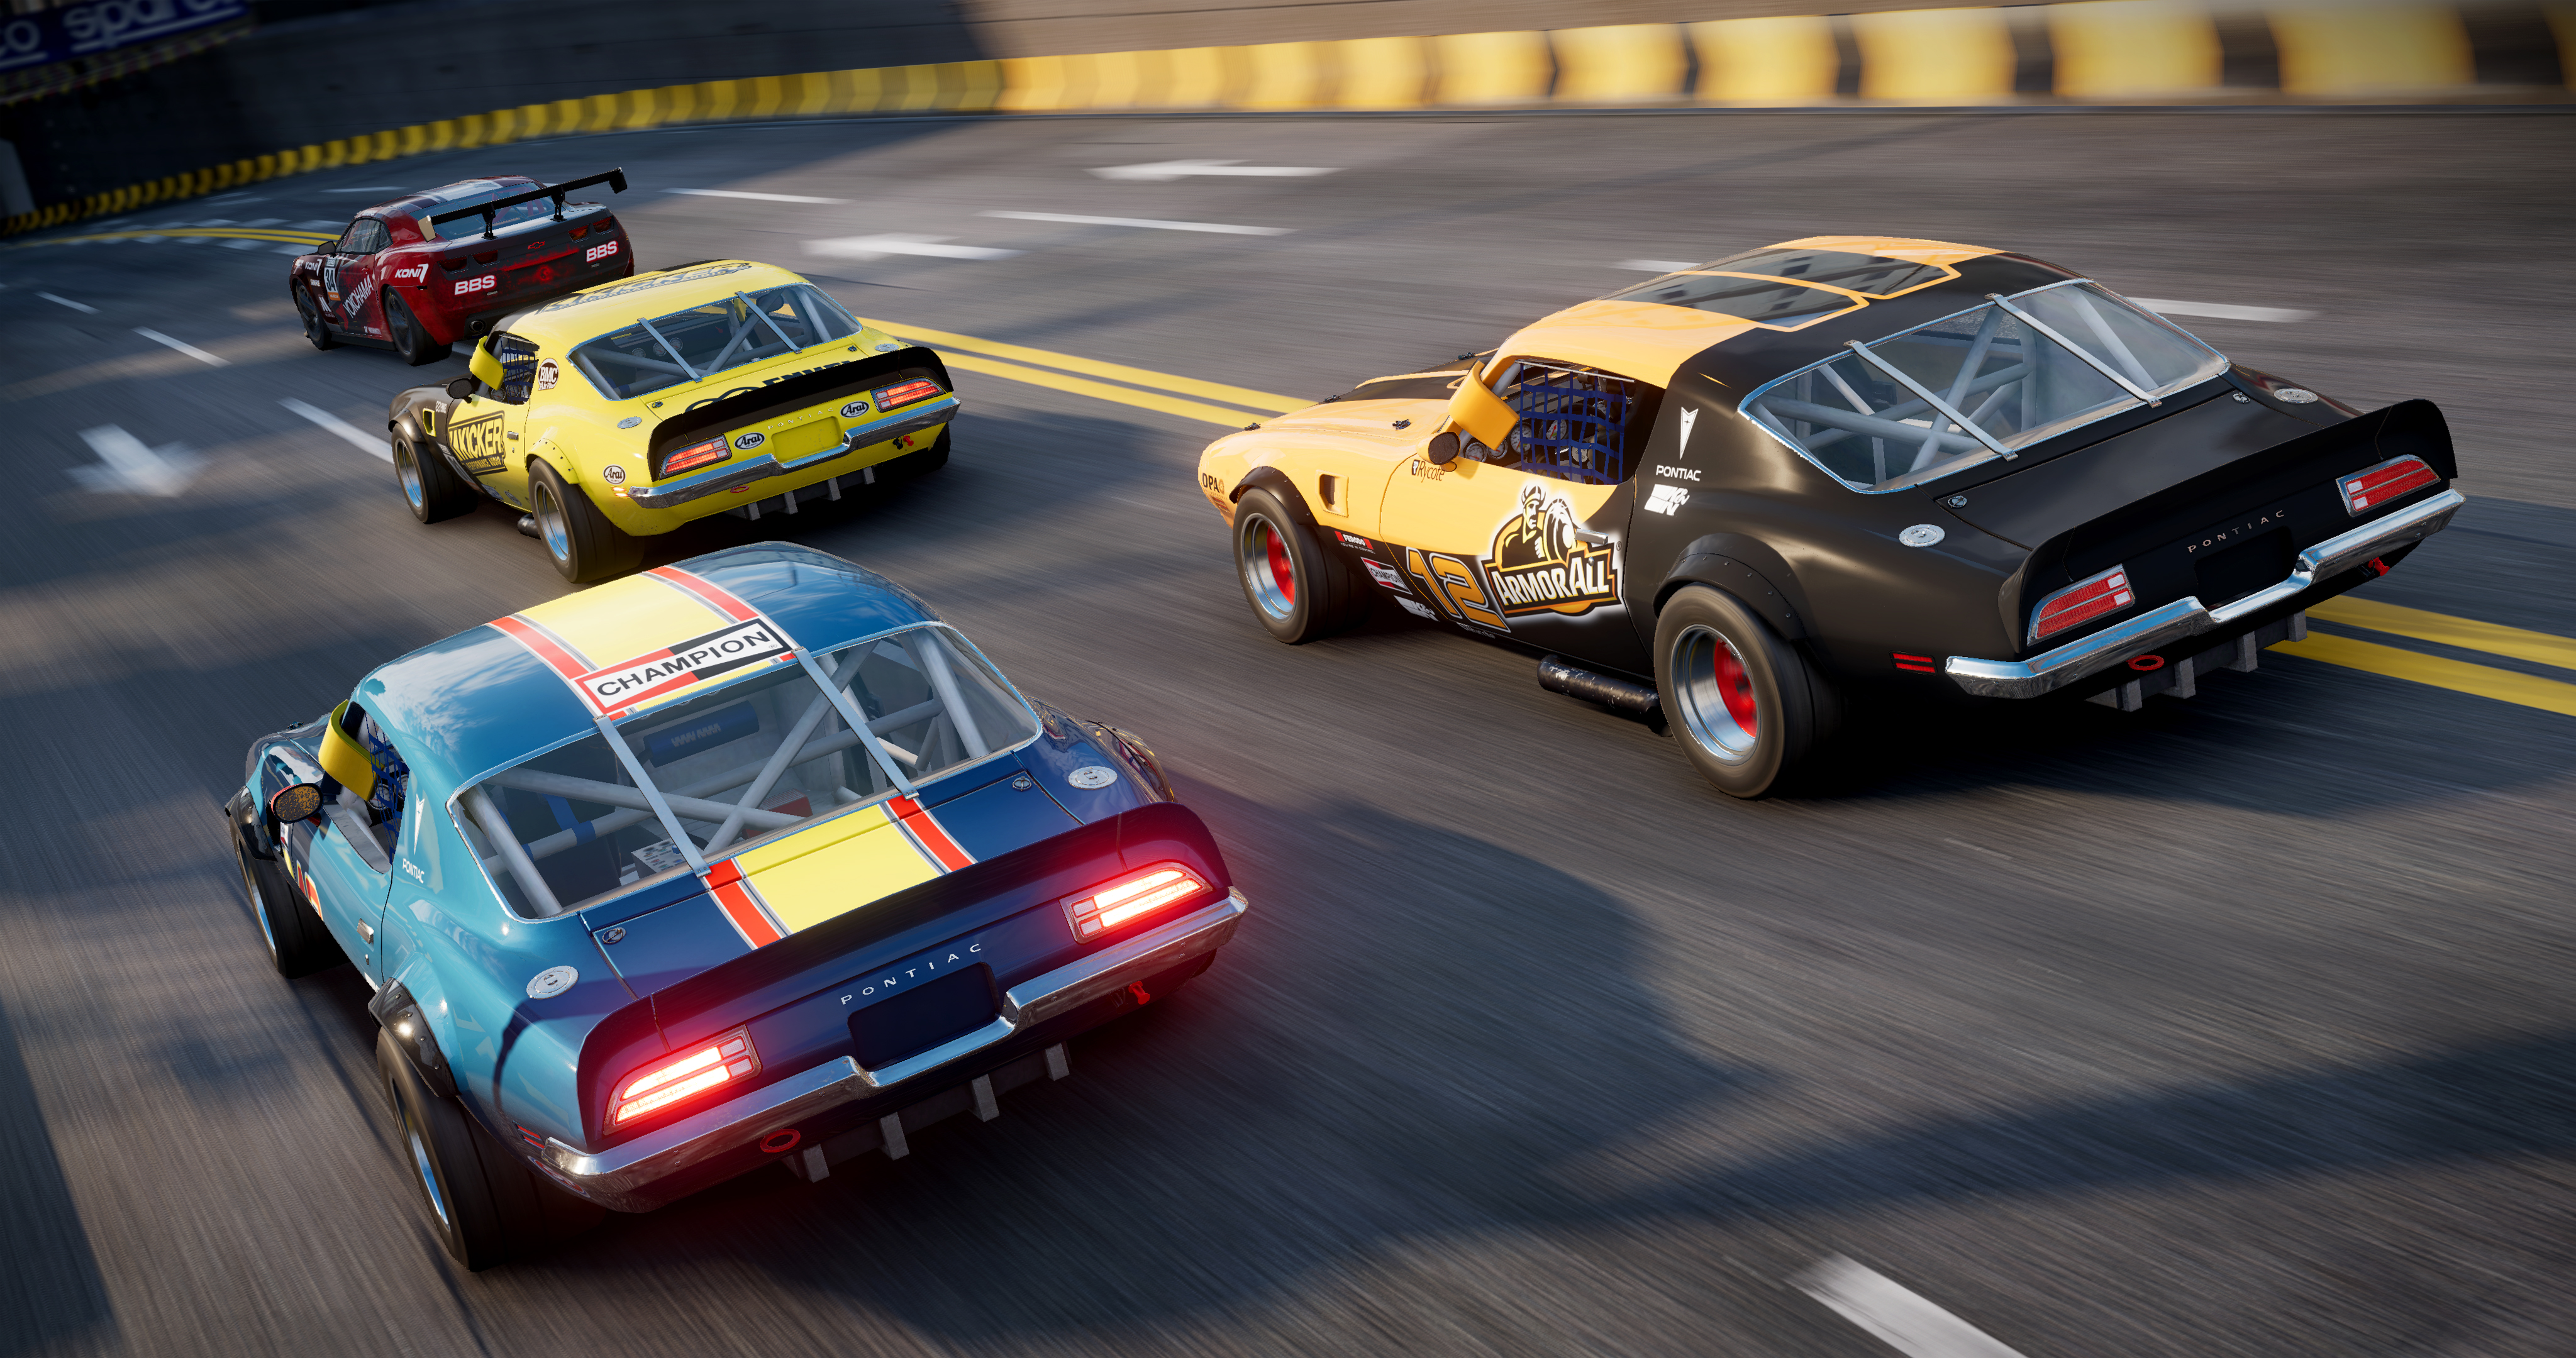 Muscle cars make a return, promising full-throated racing